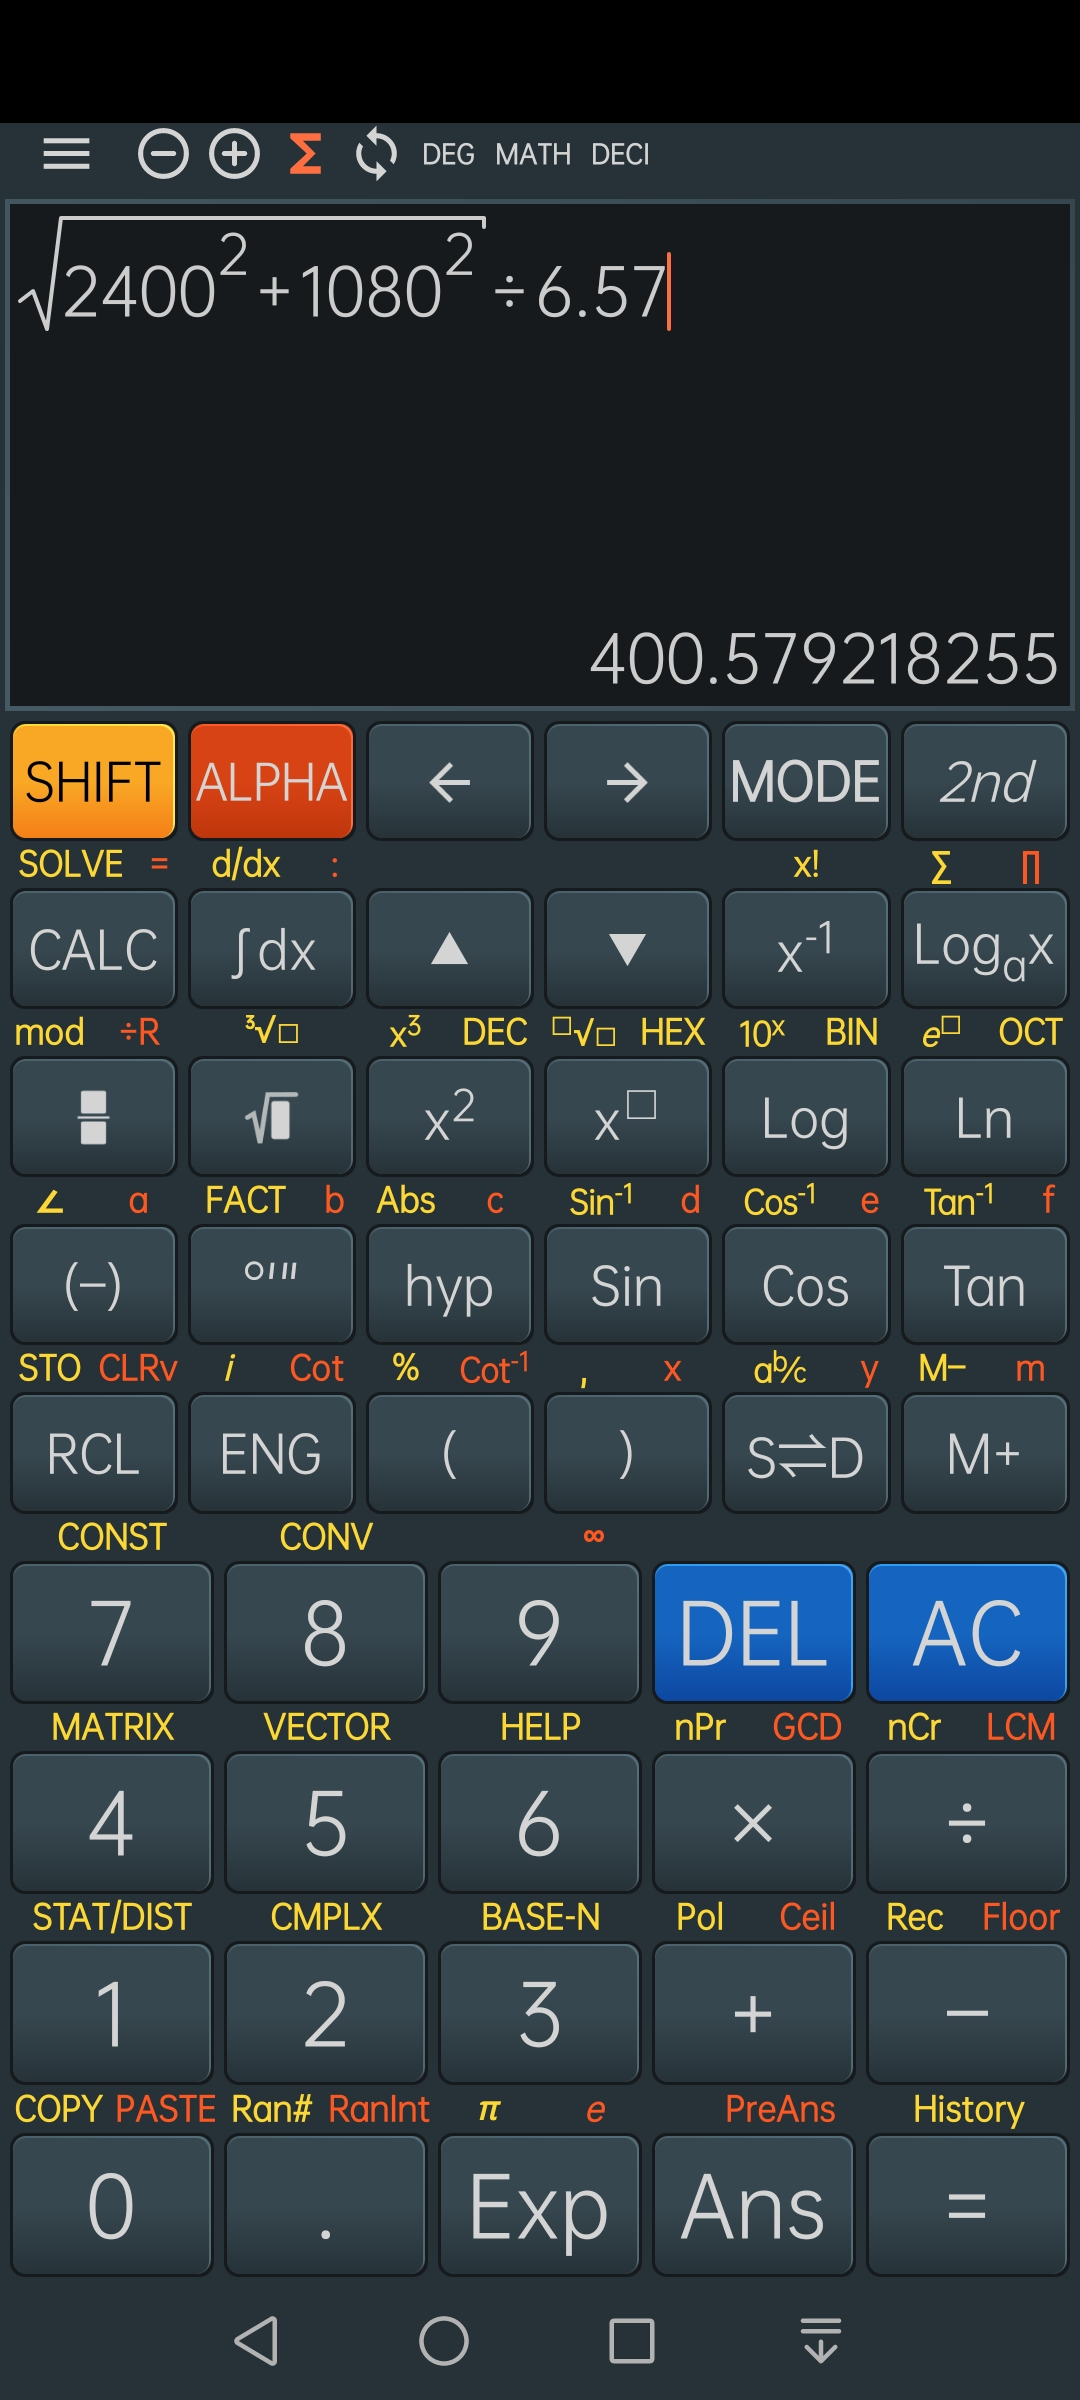 Screenshot_20191206_235908_com.nstudio.calc.casio.jpg